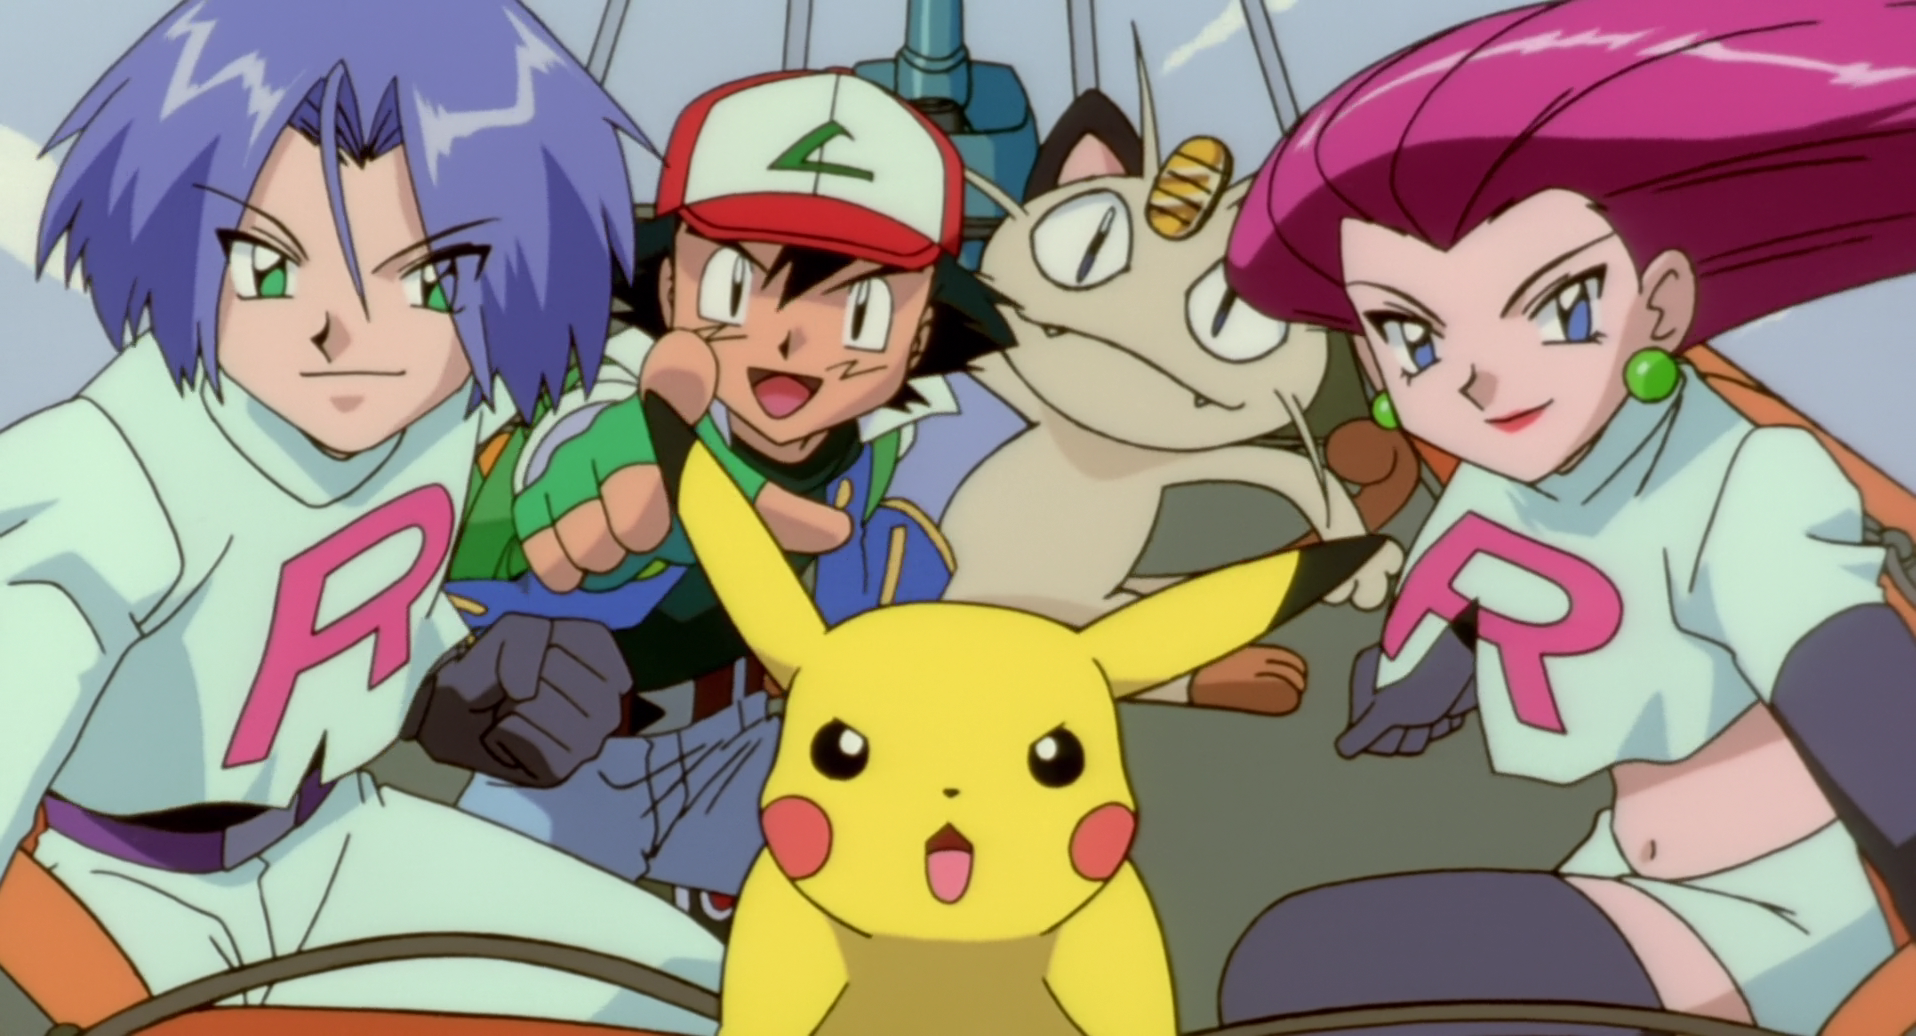 Why does team rocket want pikachu